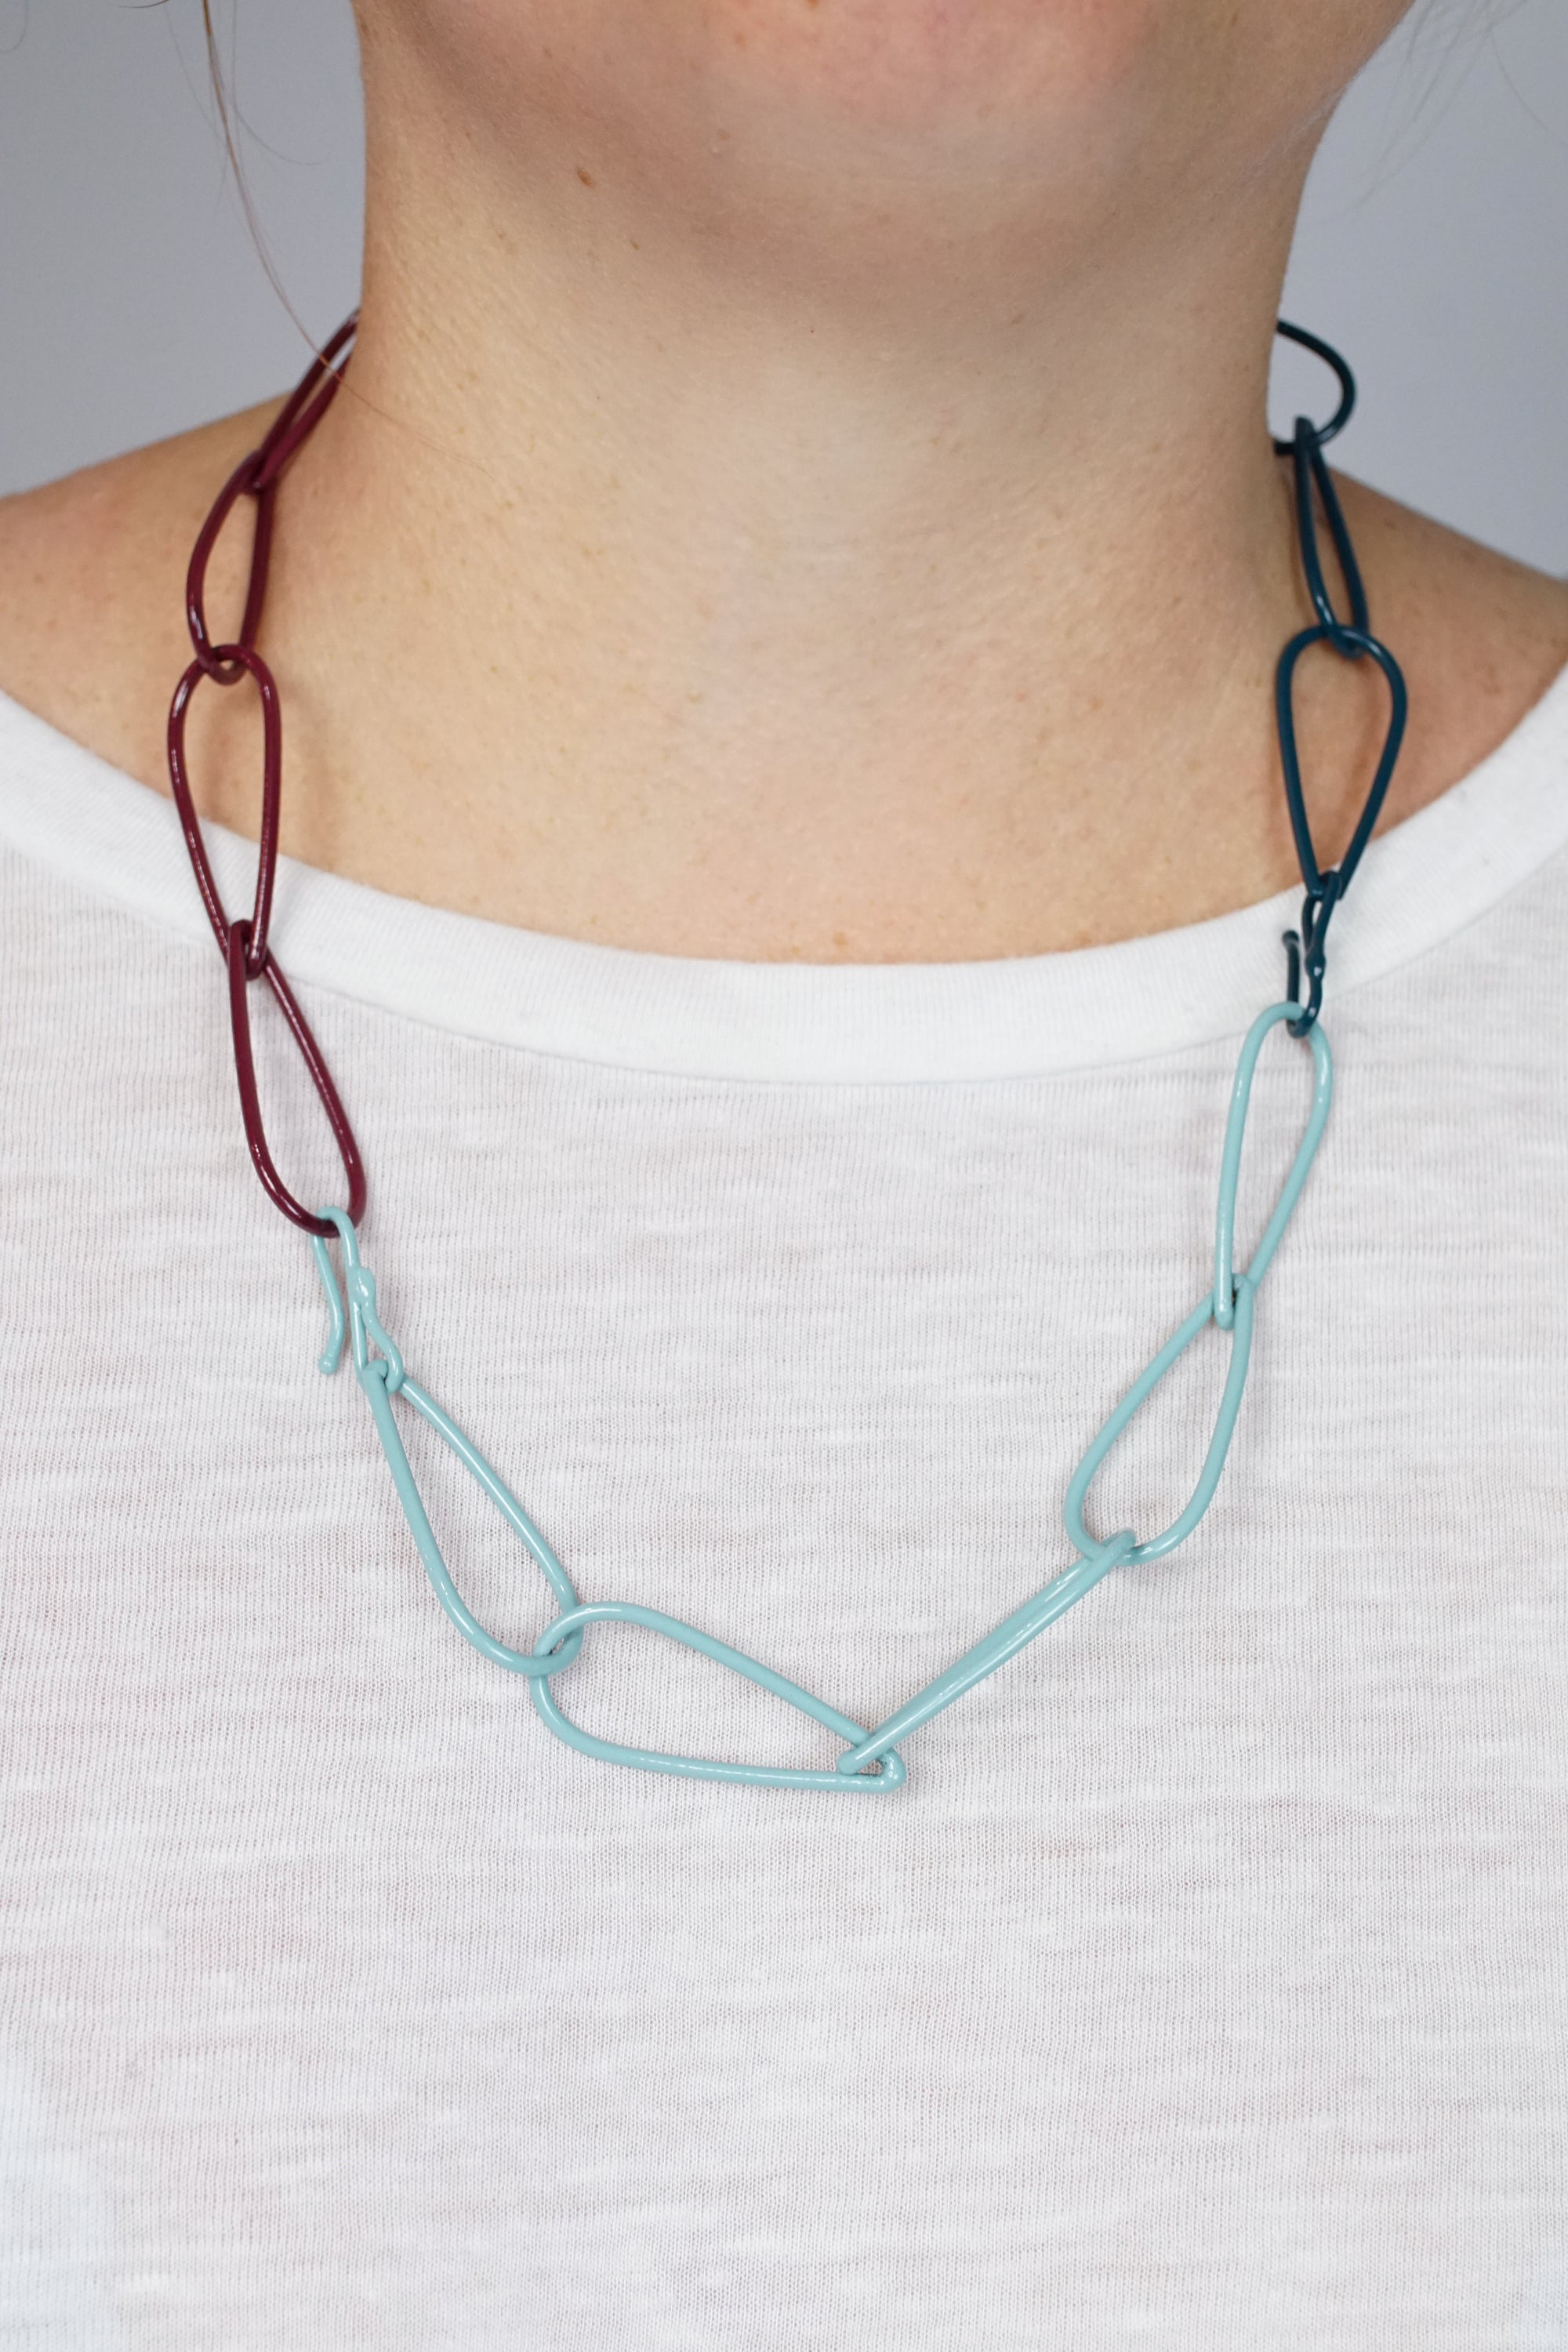 Modular Necklace in Lush Burgundy, Faded Teal, and Deep Ocean